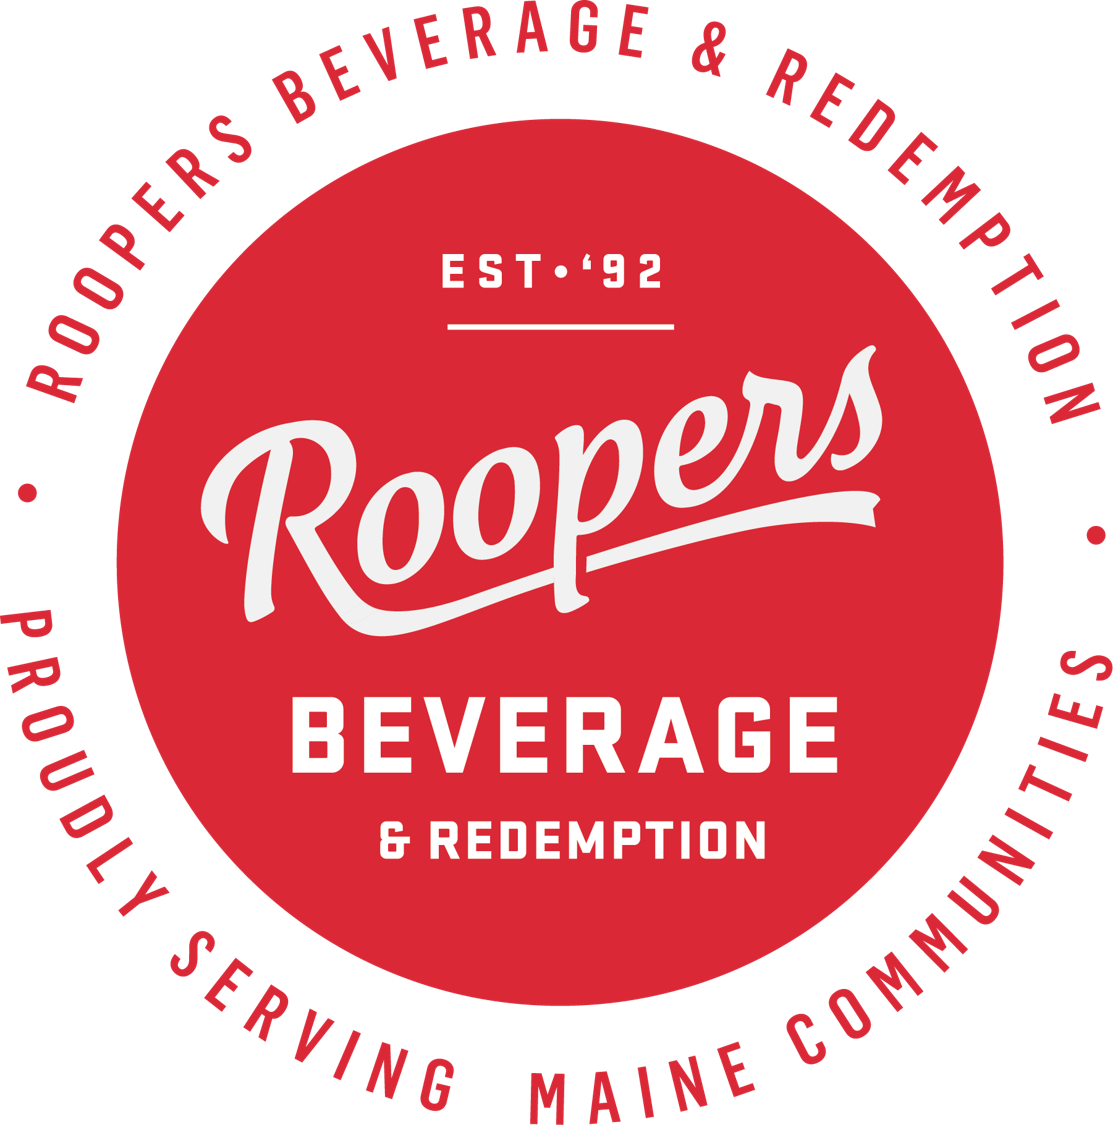 Roopers Beverage & Redemption